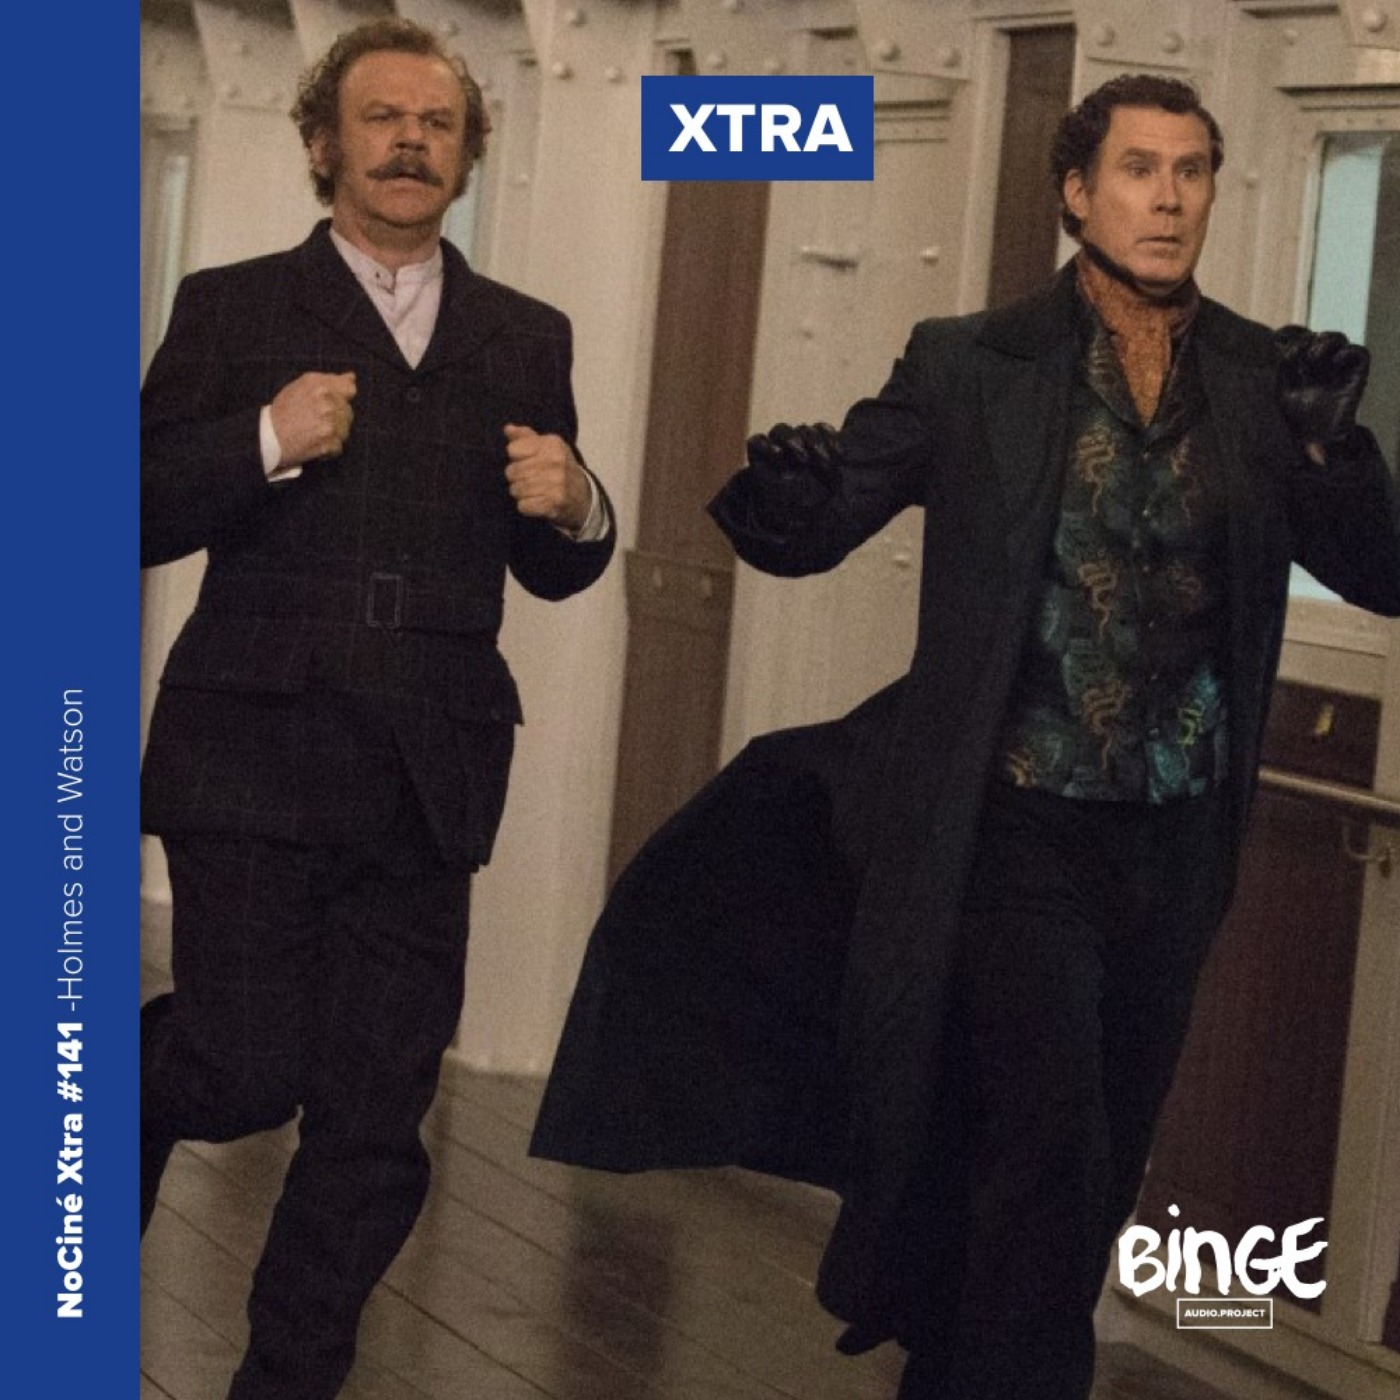 Xtra - Holmes and Watson